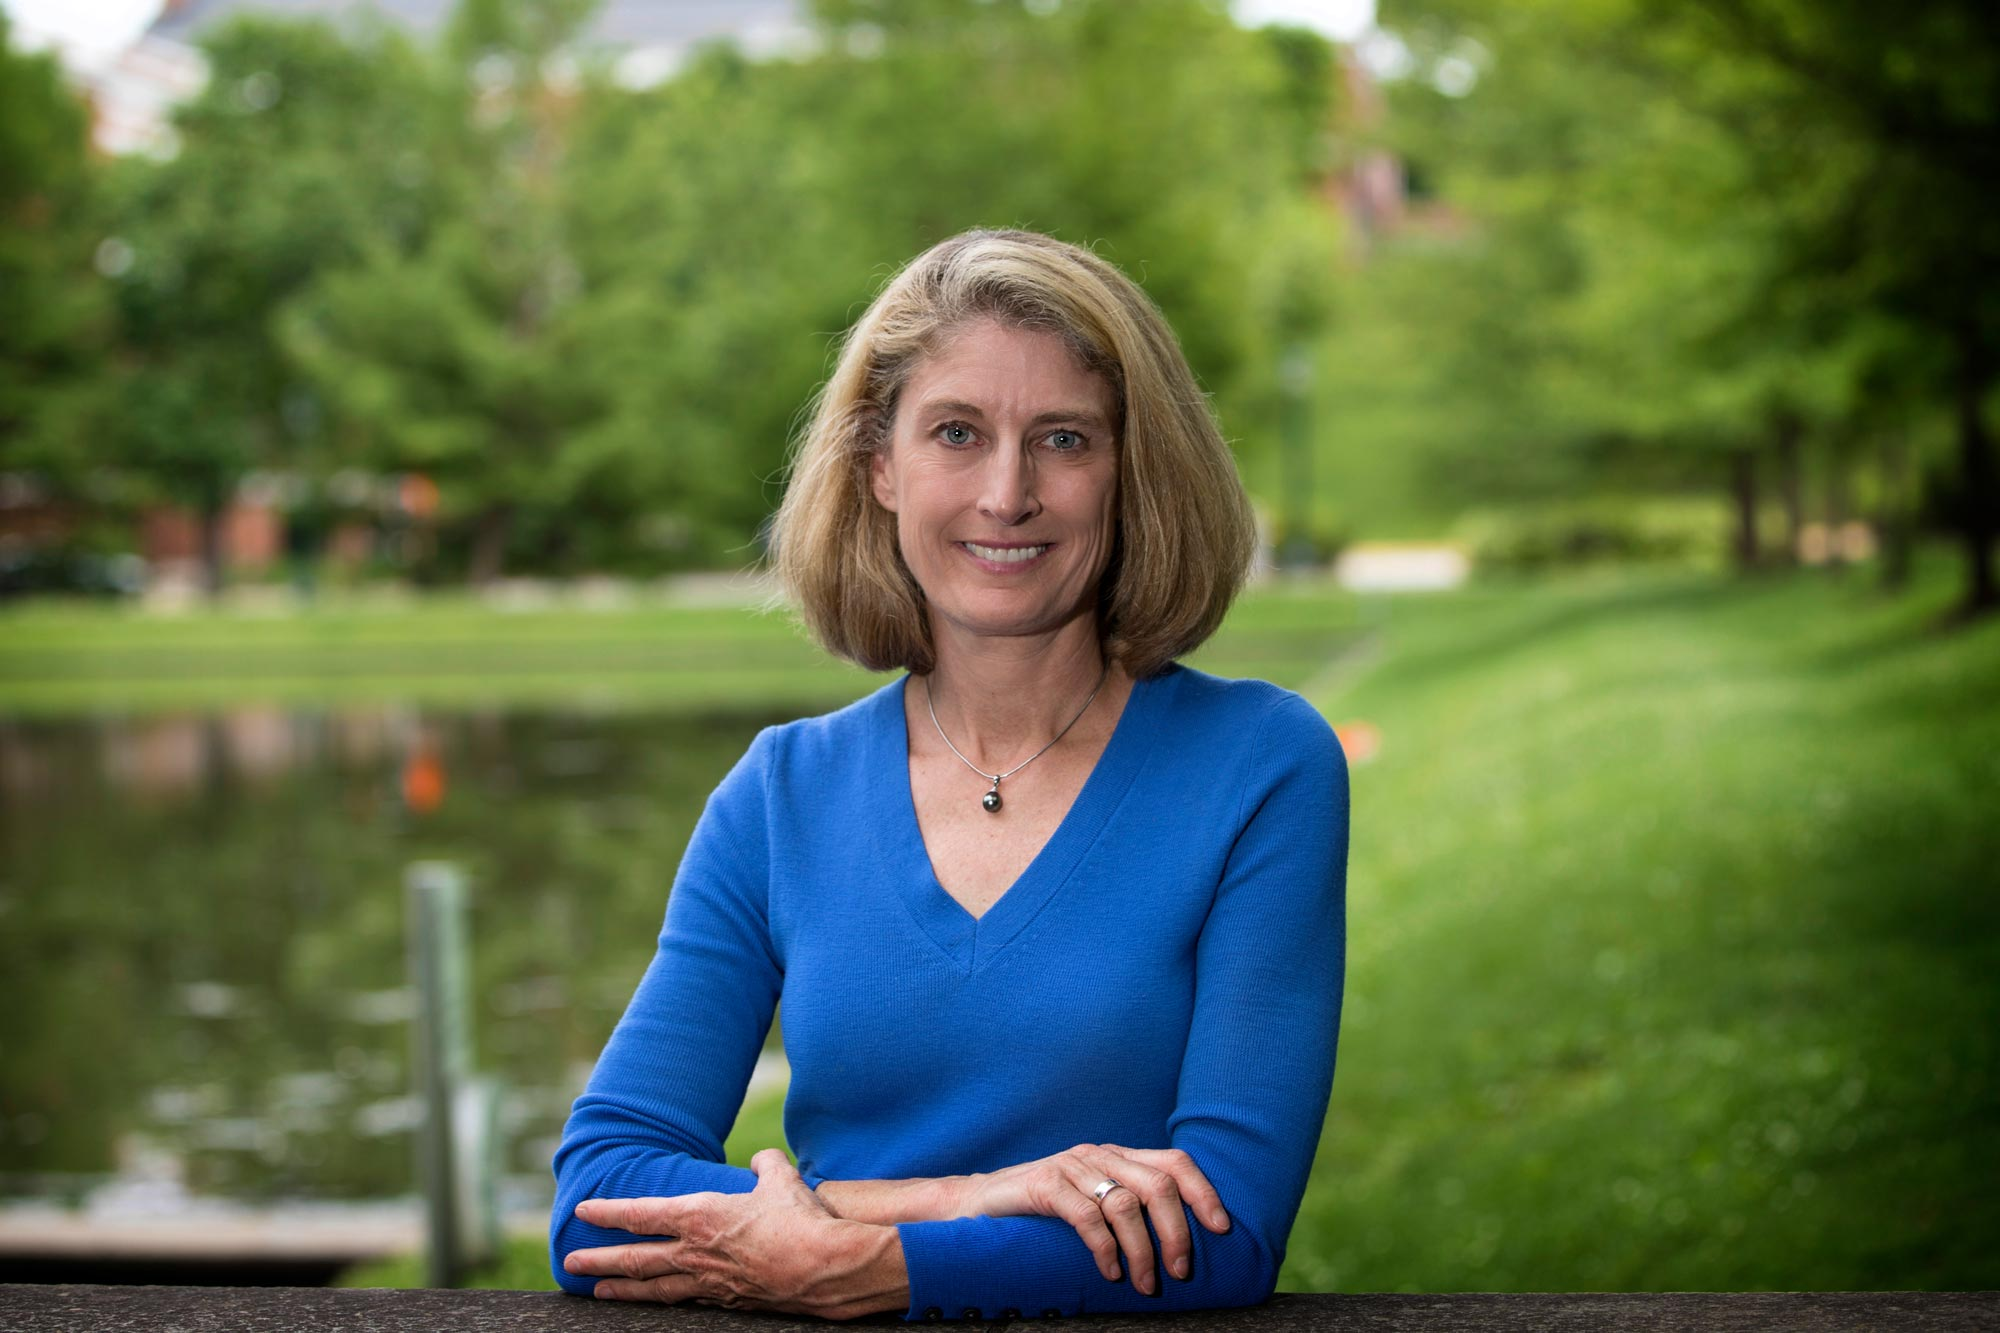 Environmental sciences professor Karen McGlathery is leading the new UVA Environmental Resilience Institute.